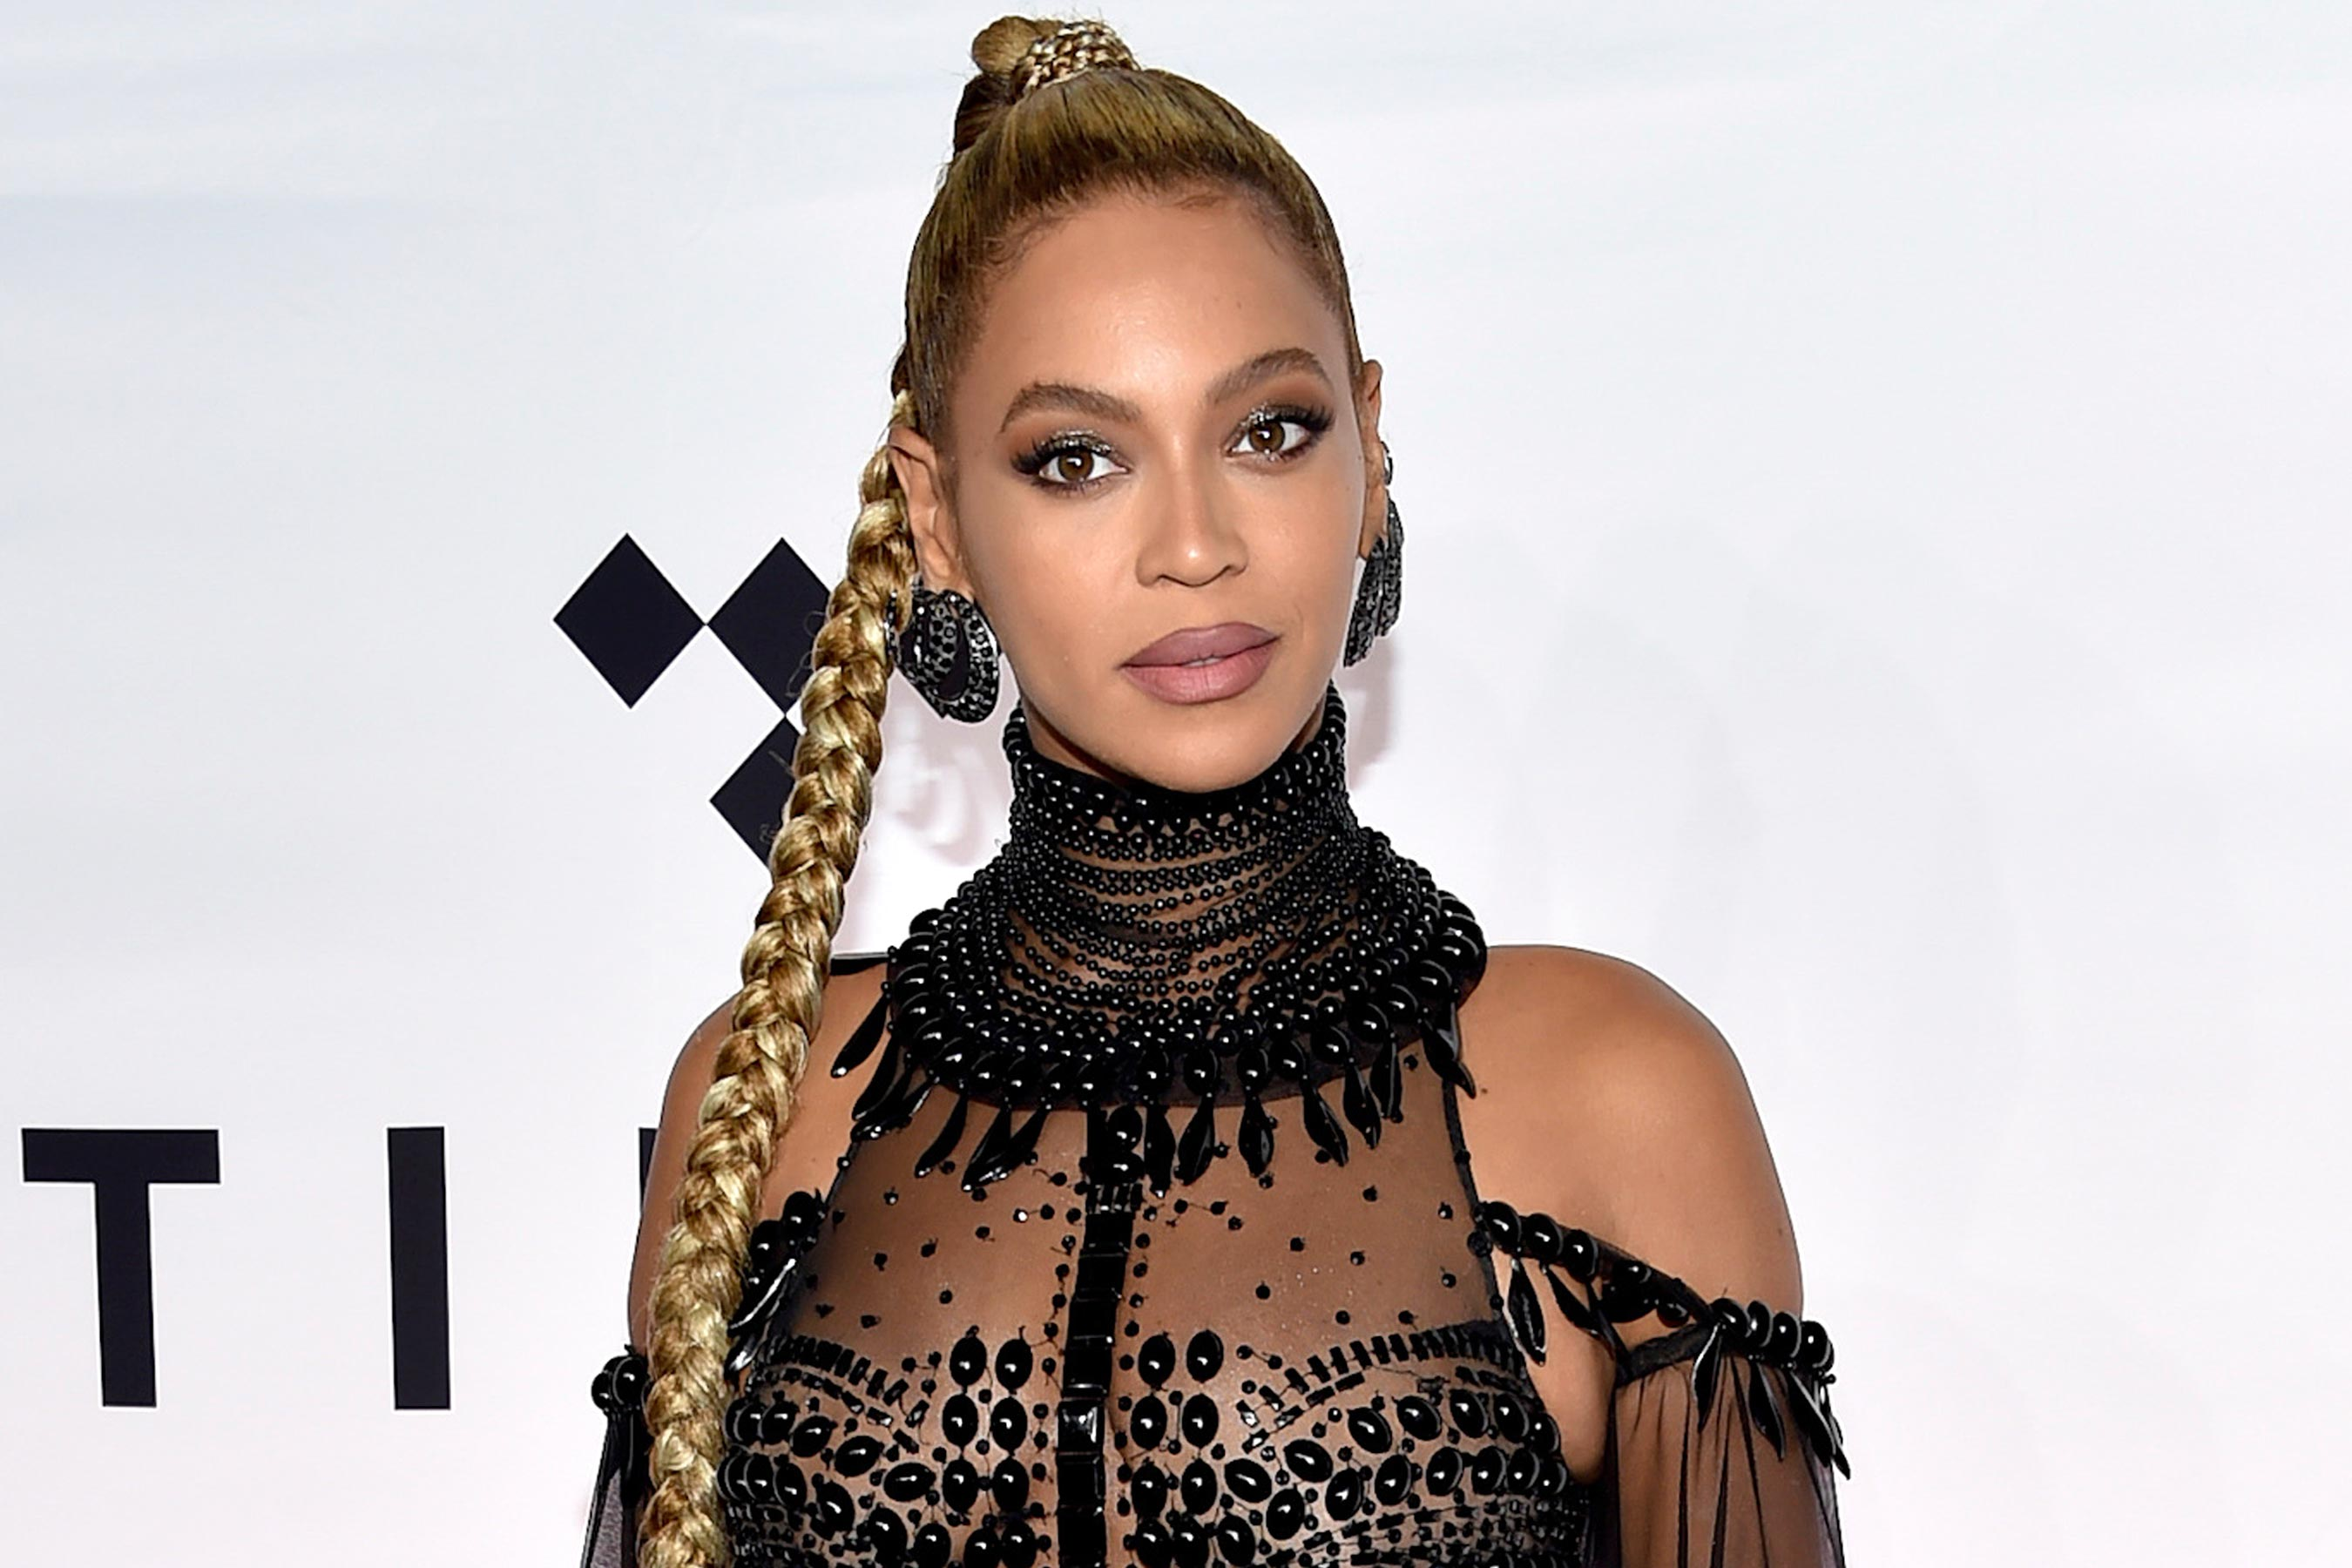 Beyoncé Delivers Message to Those Impacted by Hurricane During Houston Visit: This Is 'a Celebration of Survival'